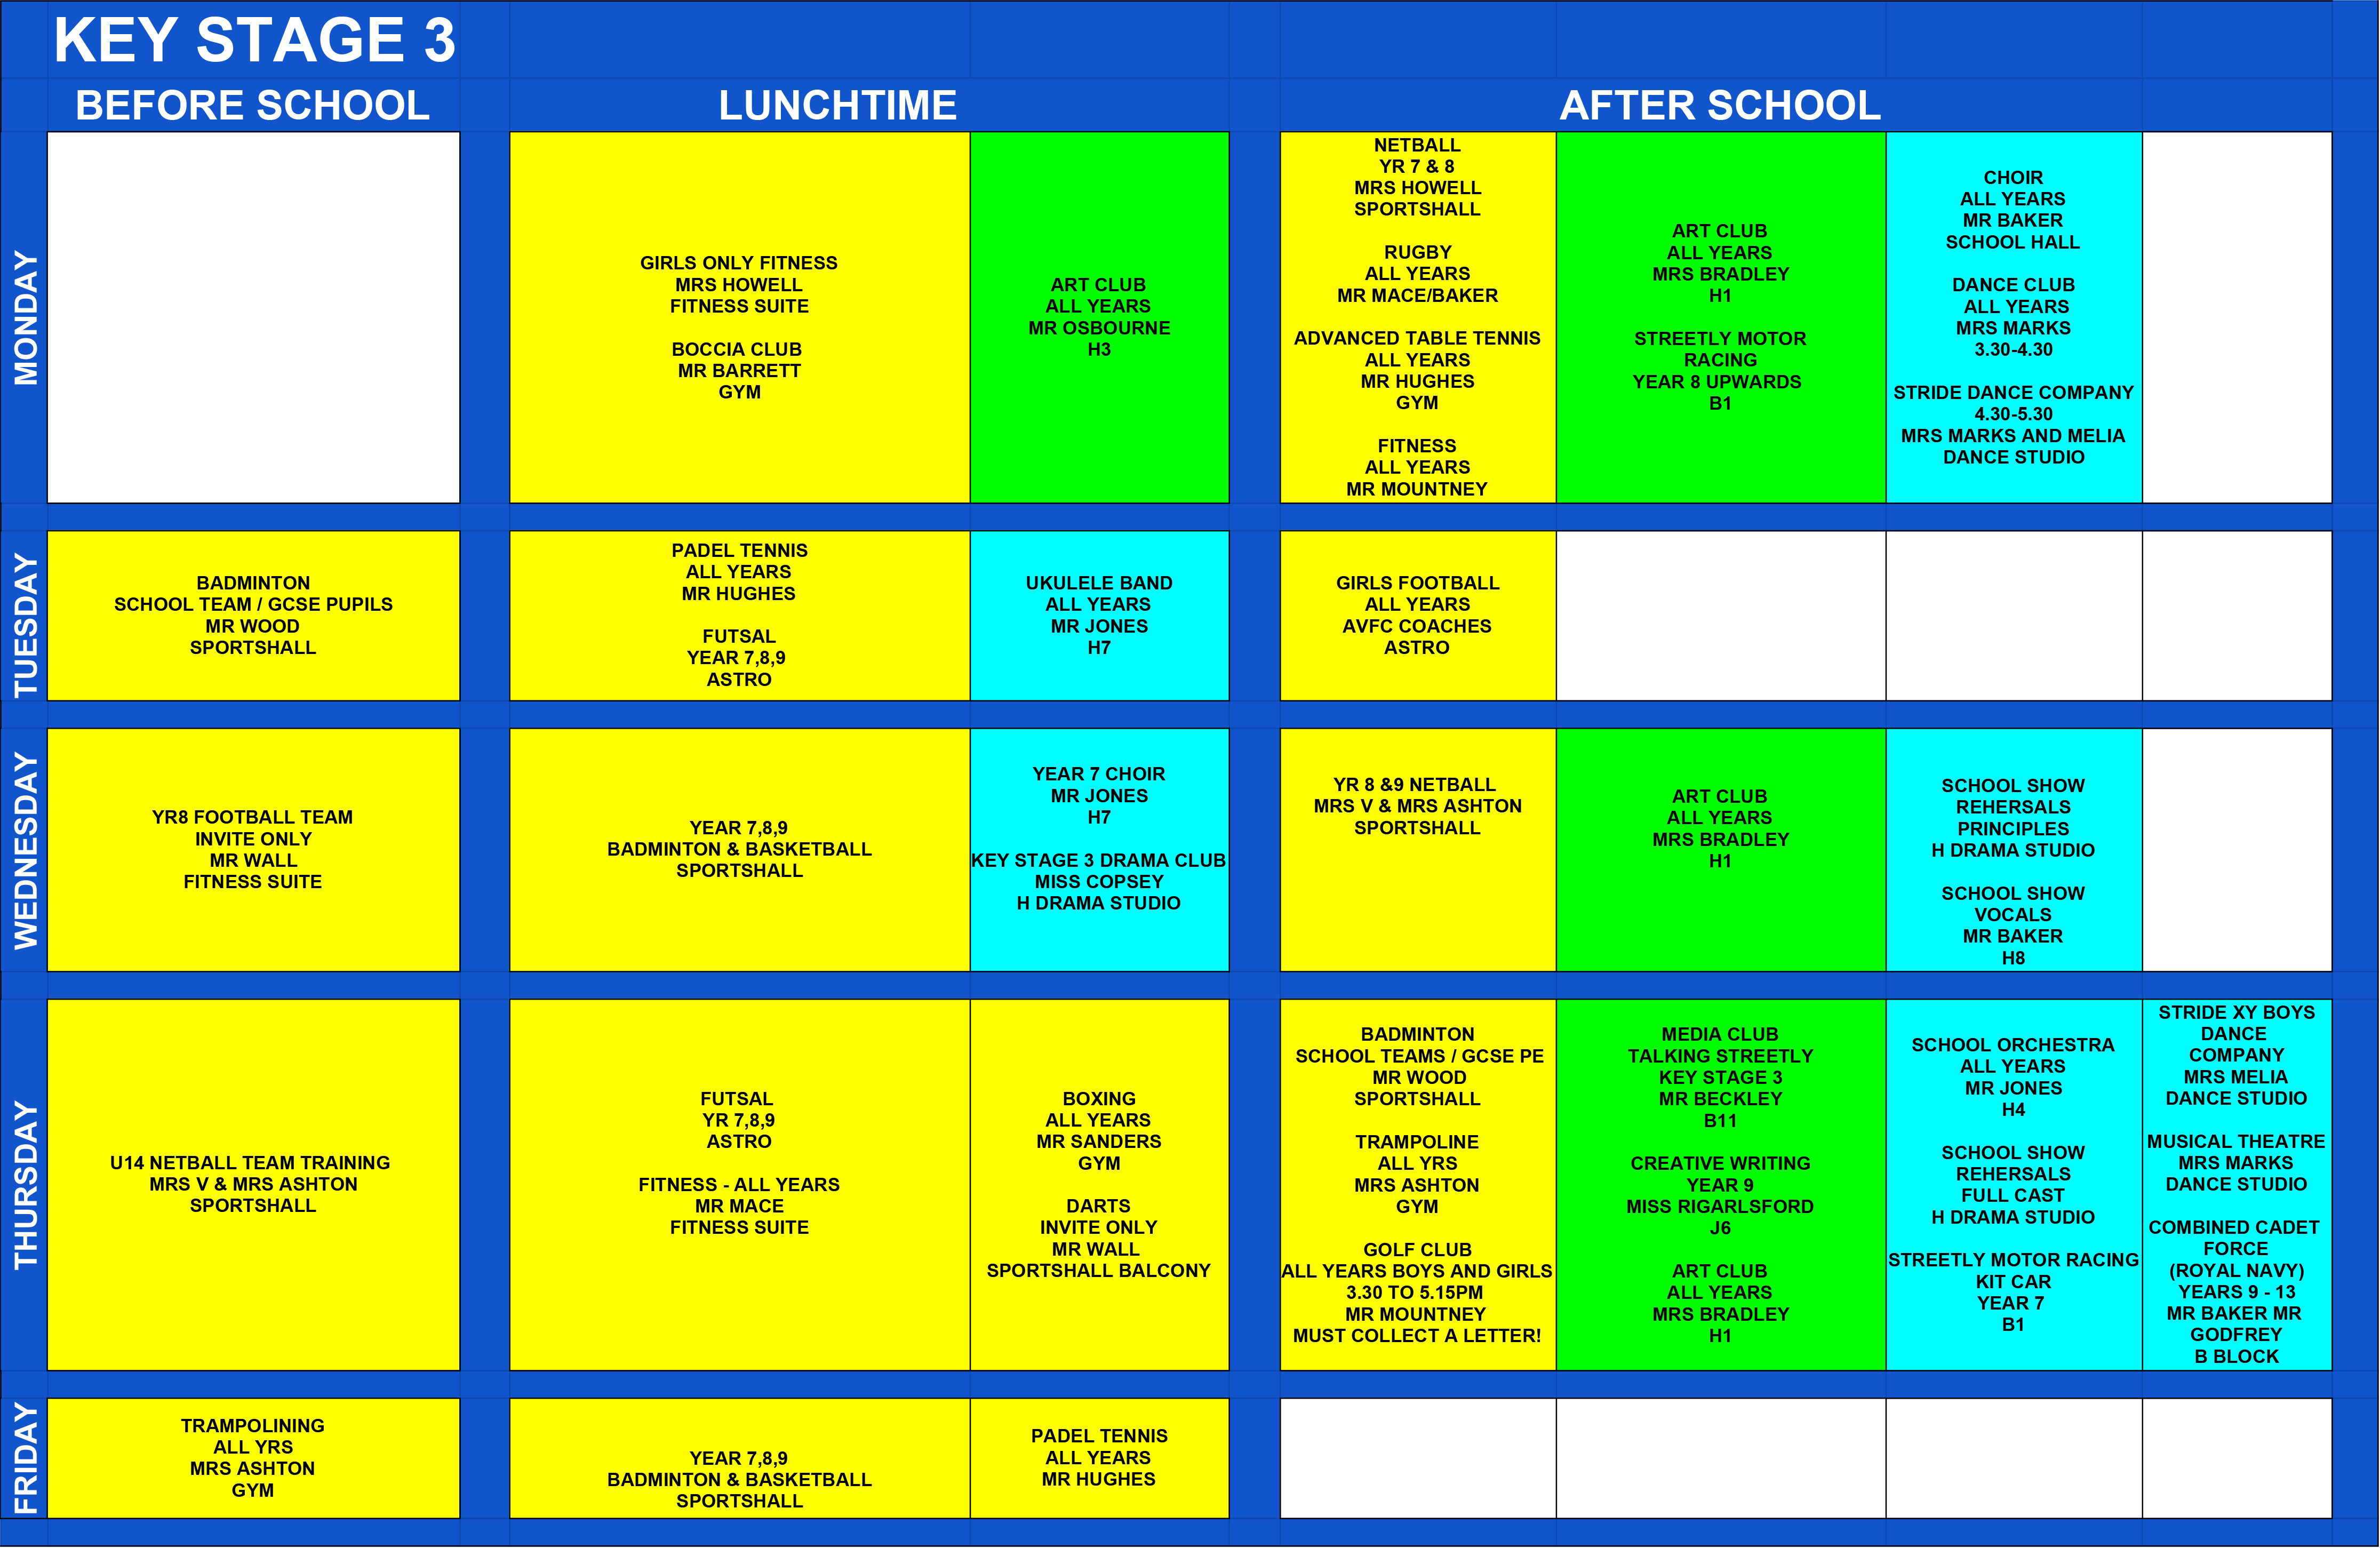 KEY STAGE 3 EXTRA CURRICULAR TIMETABLE 2